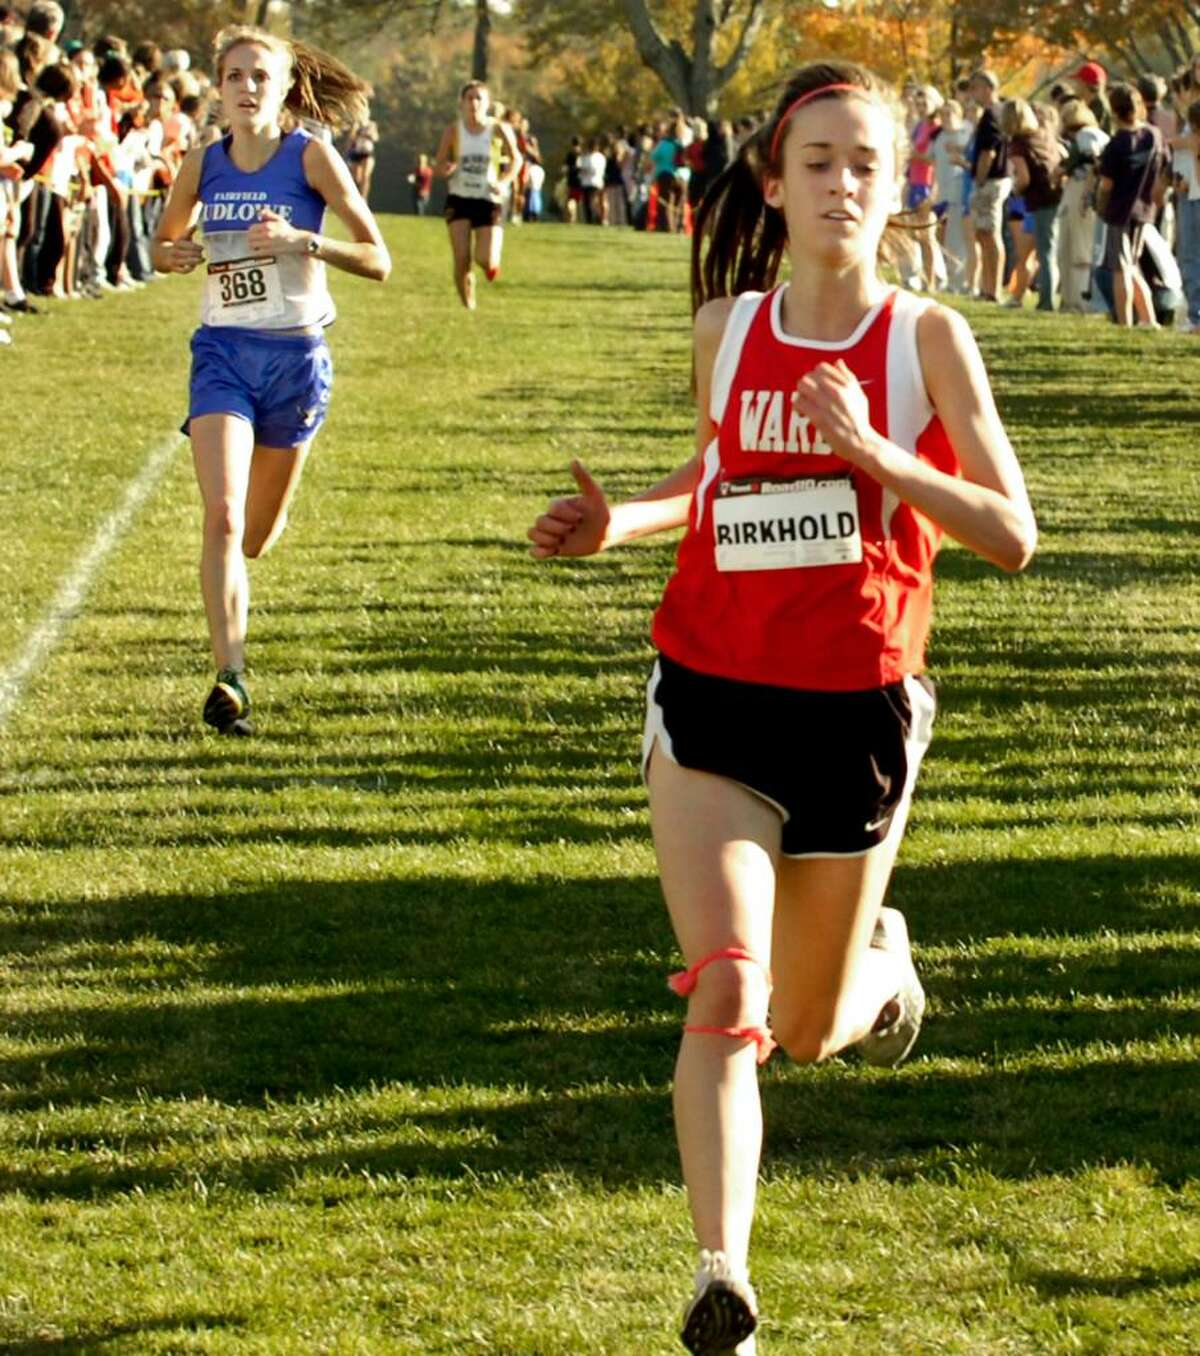 Carly Birkhold, of Warde, fourth in the girls varsity cross country championship race at Waveny Park in New Canaan, on Thursday, Oct.22,2009.